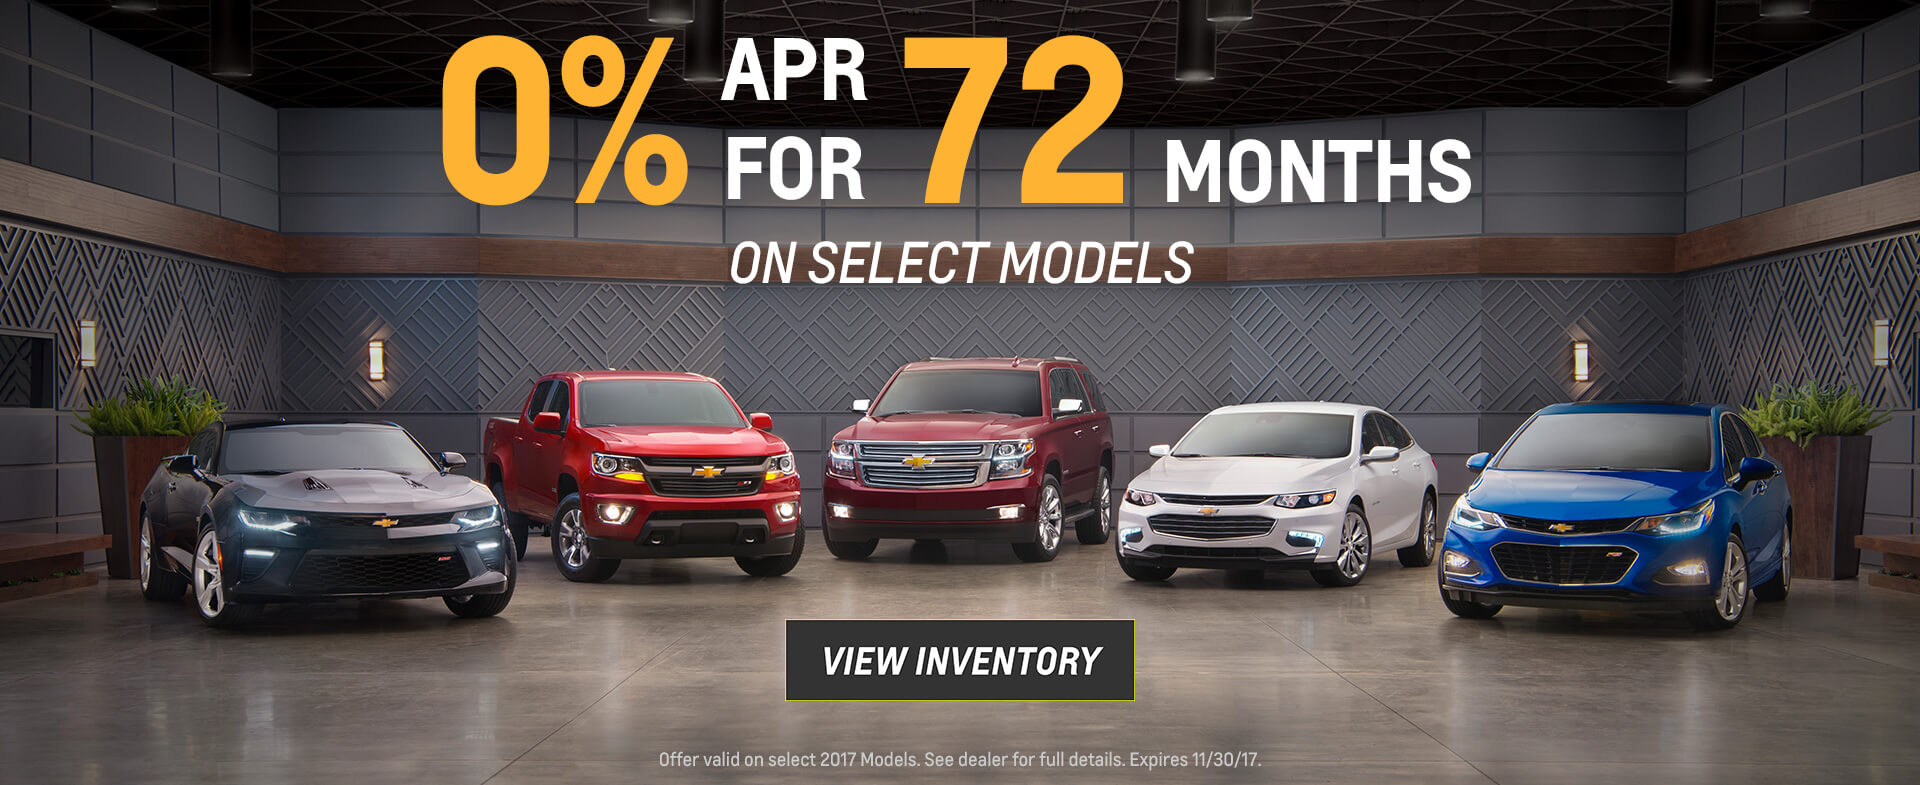 North shore chevrolet of smithtown for General motors cars brands